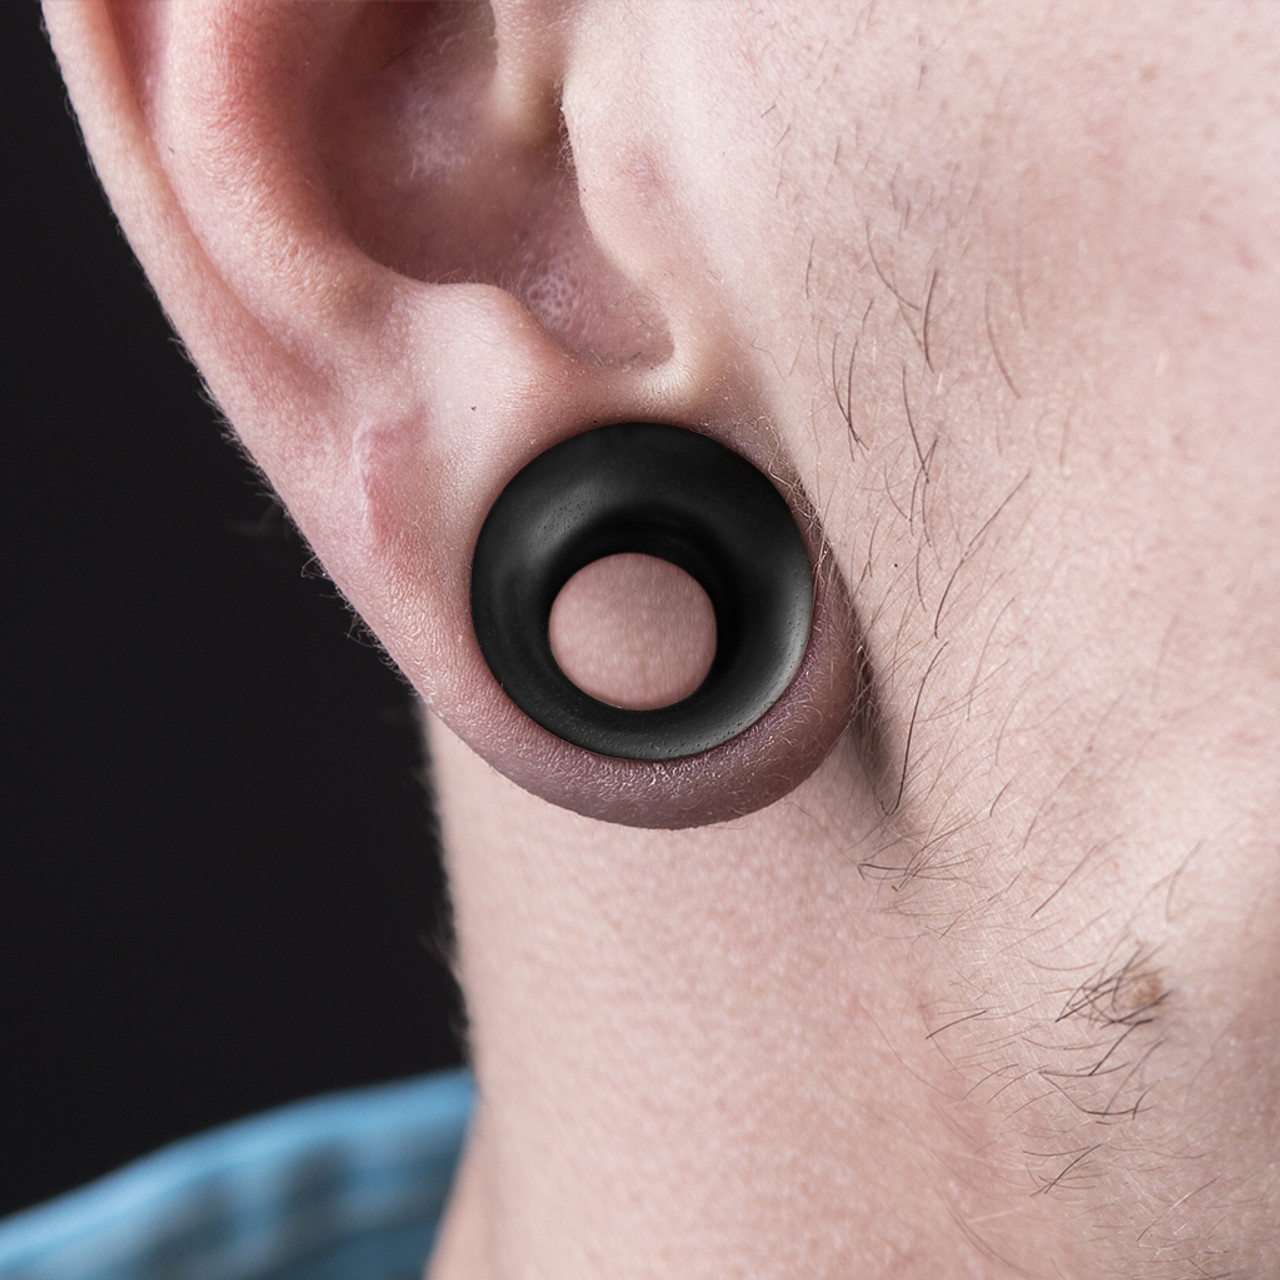 1 PAIR Ear Plugs Gauges Black Areng Wood Concave Double Flare Organic Tunnels